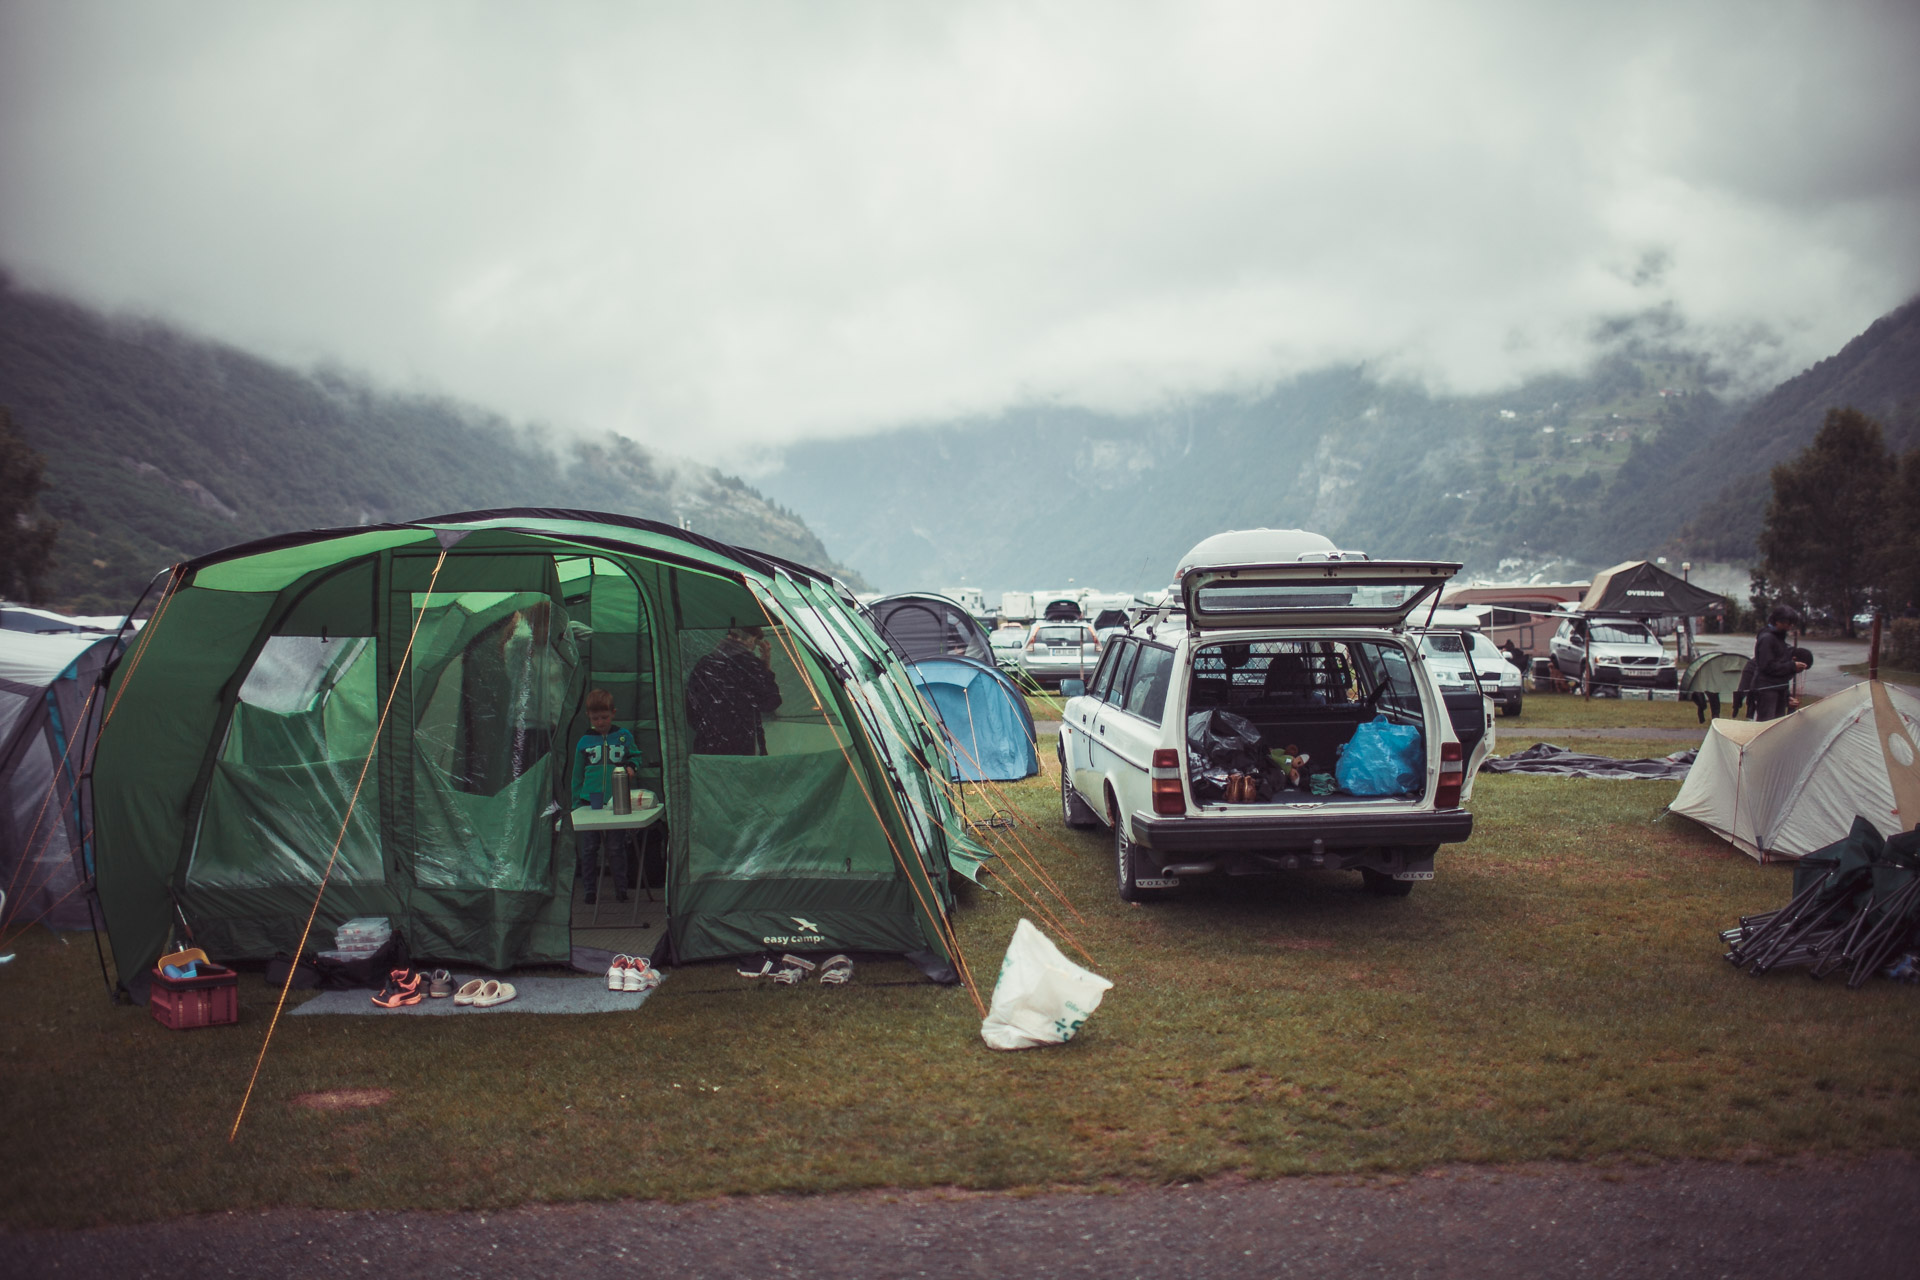 Camping in Geiranger camping grounds